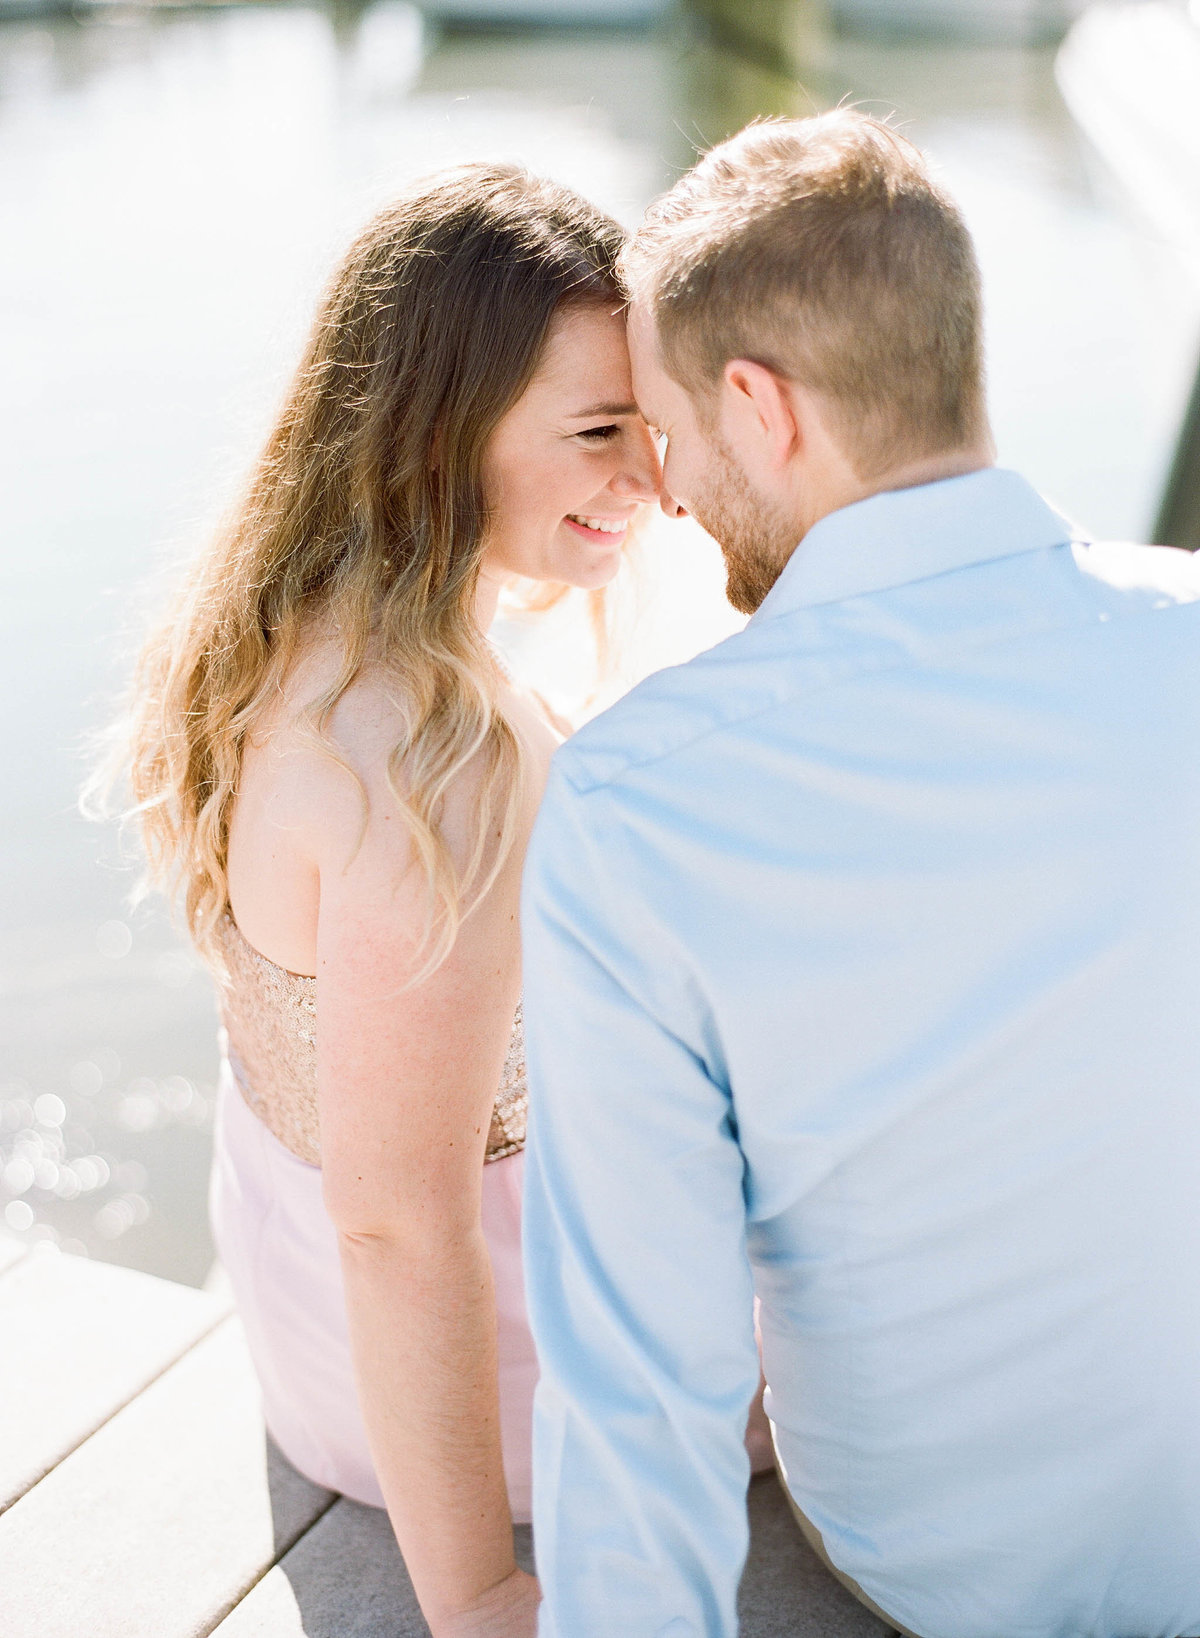 Klaire-Dixius-Photography-Great-Falls-Alexandria-Engagement-Session-Gene-Abby-Film-41